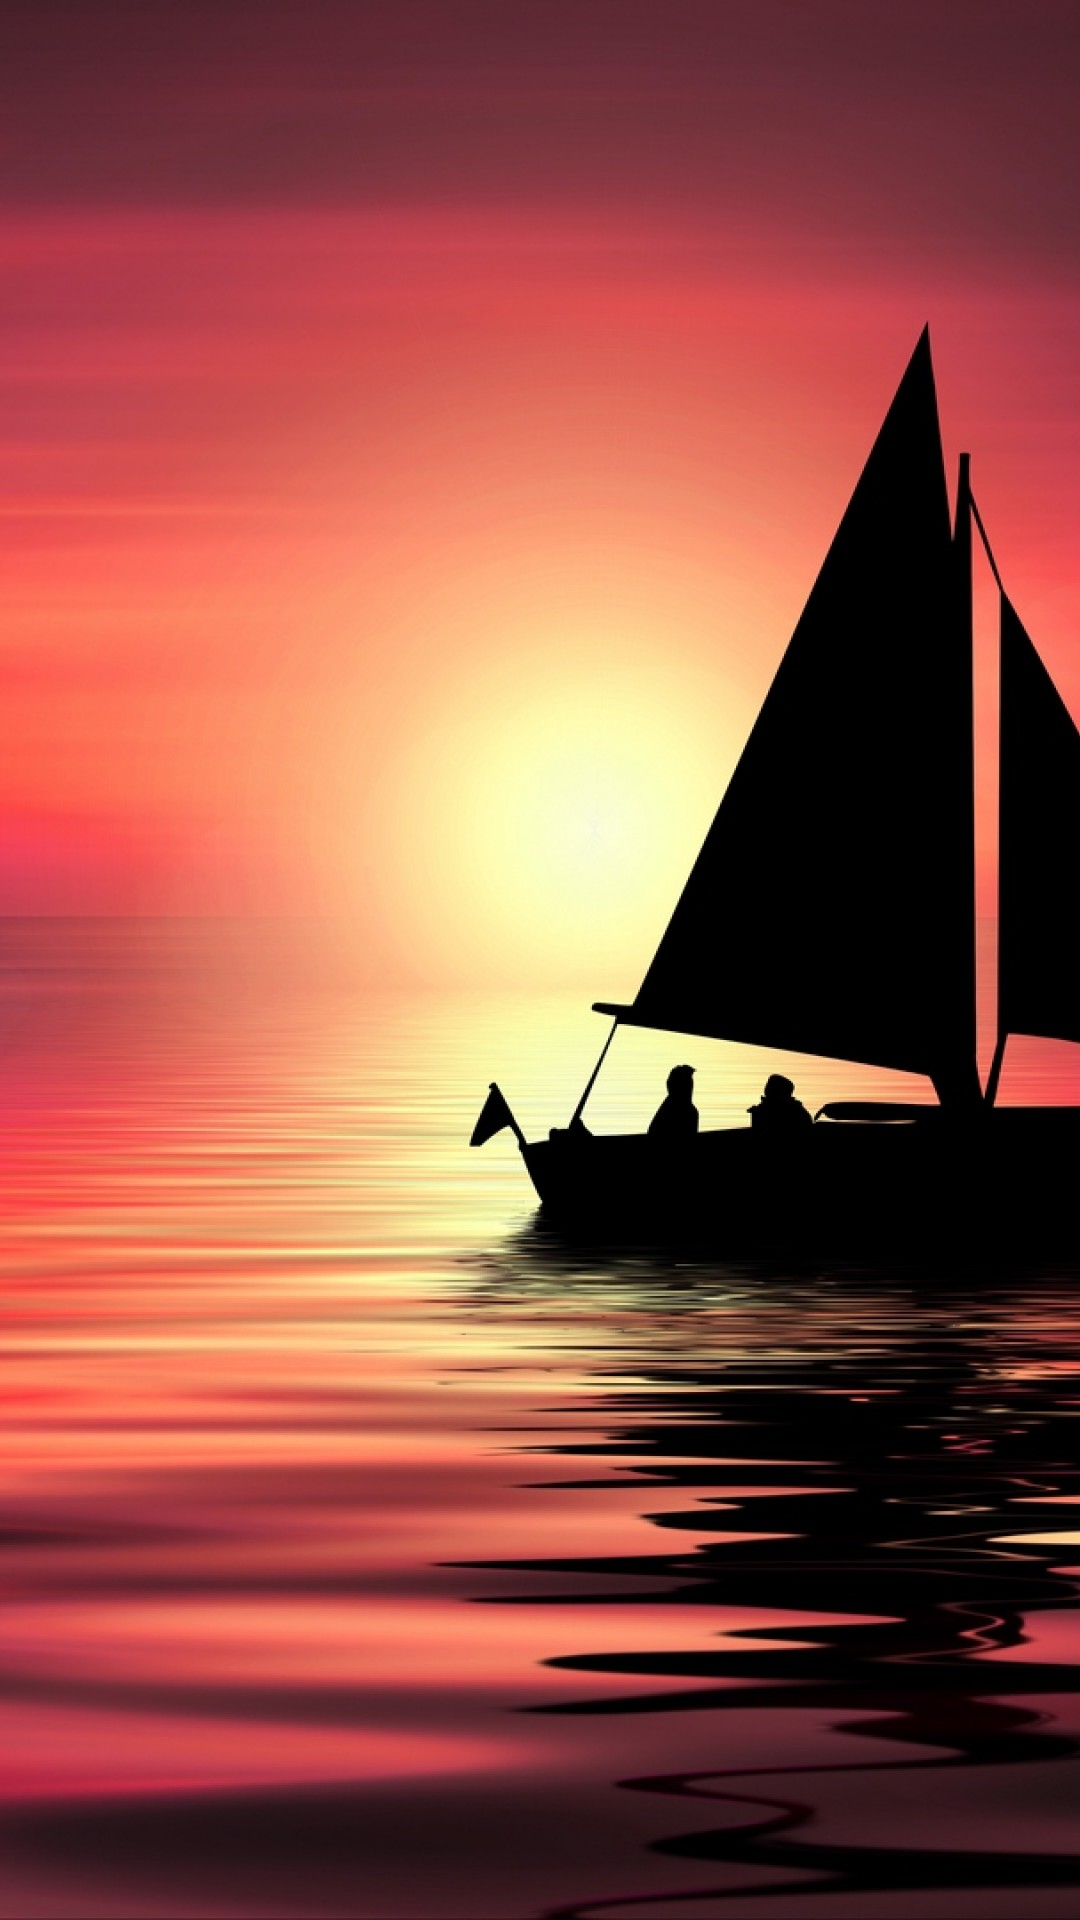 Silhouette Of Small Yacht Sailing On Sea Hd Wallpaper Iphone 6 6s Plus Hd Wallpaper Wallpapers Net